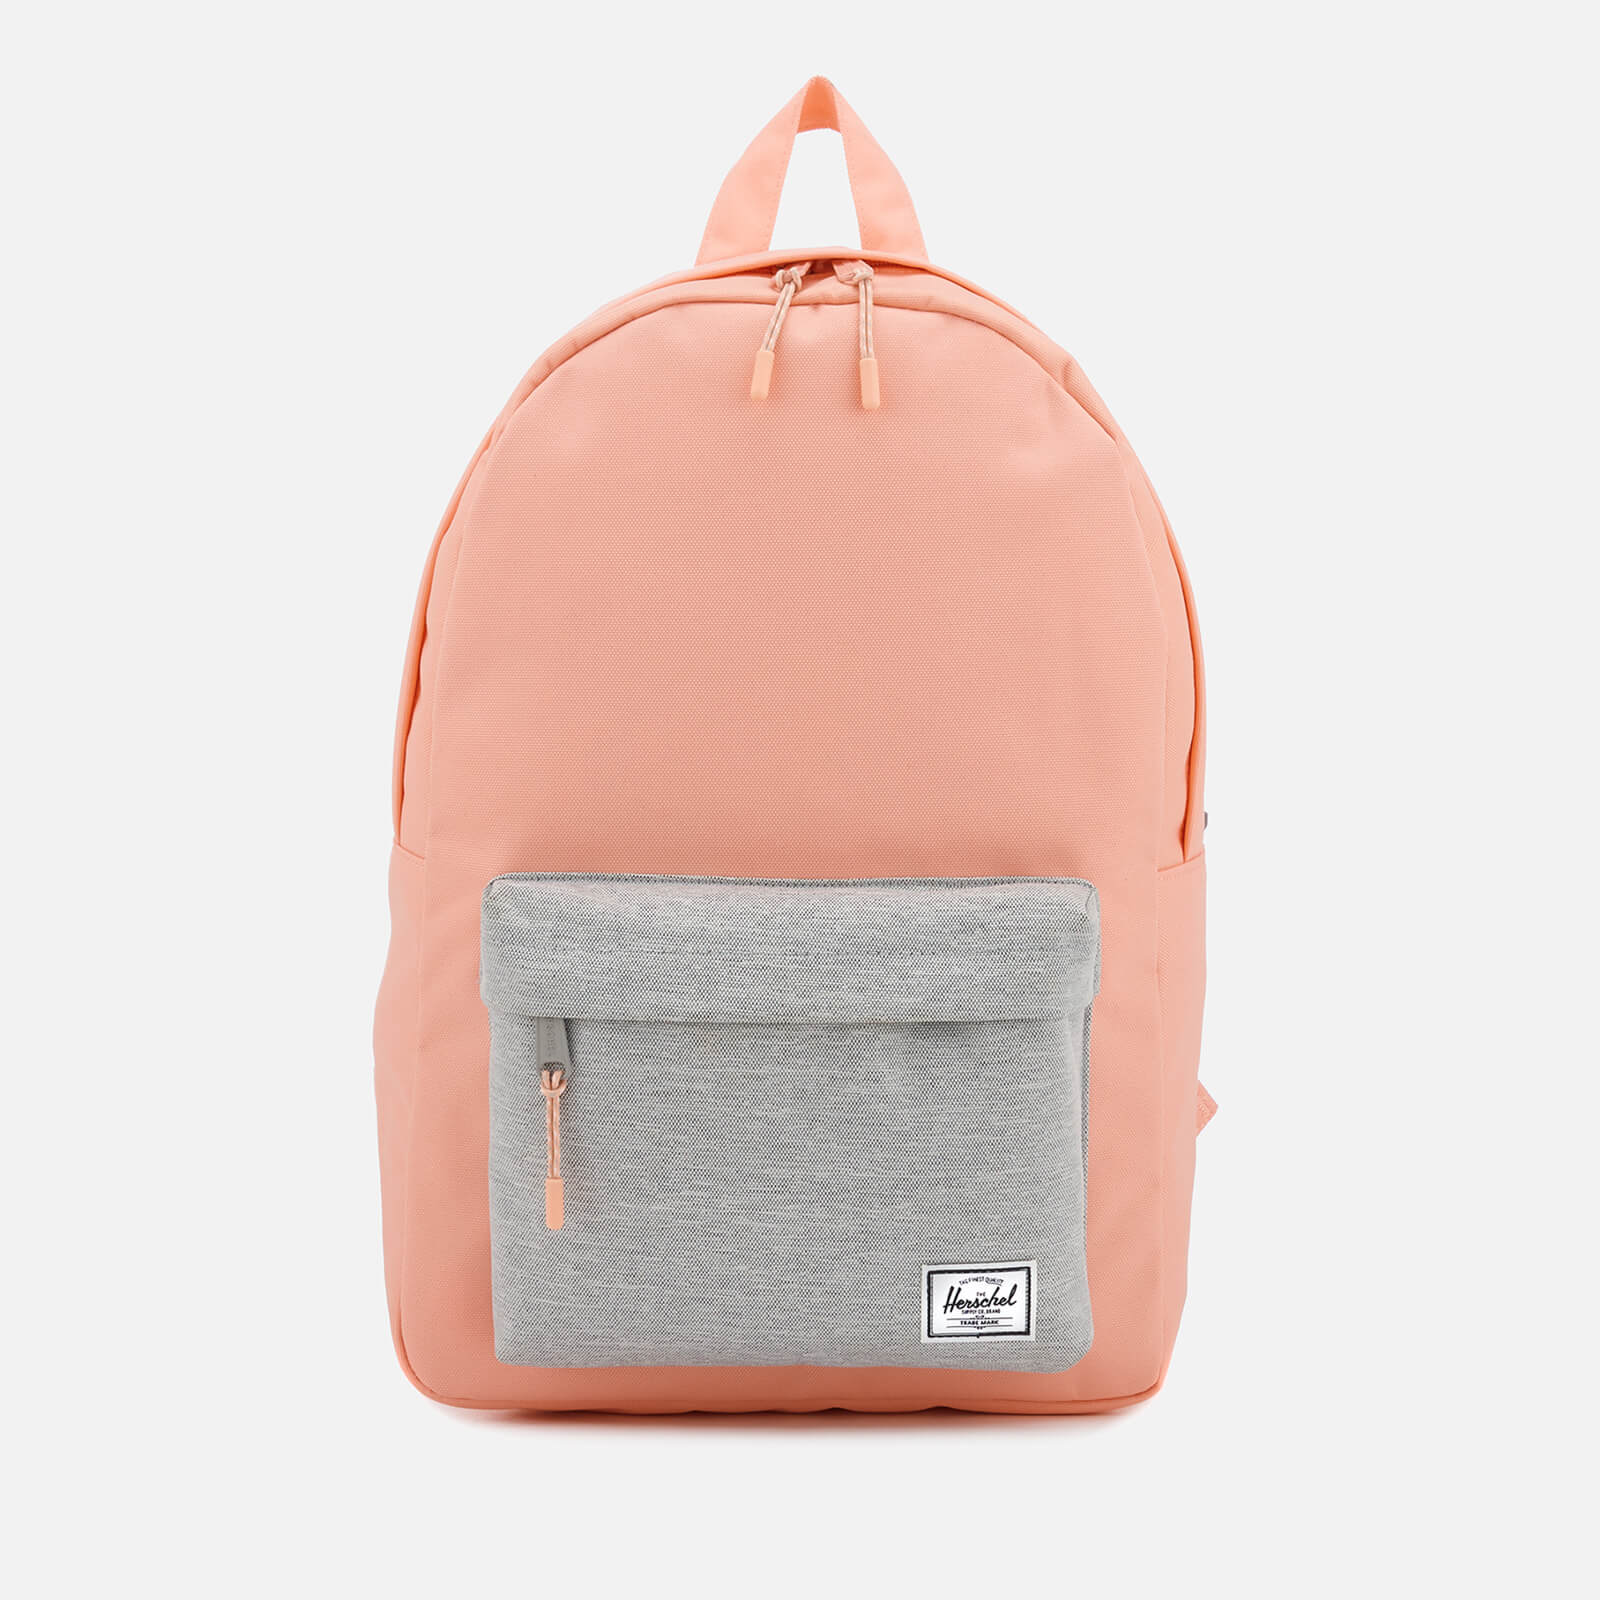 de50d219150 Herschel Supply Co. Women's Classic Mid-Volume Backpack - Peach/Light Grey  Crosshatch Clothing | TheHut.com